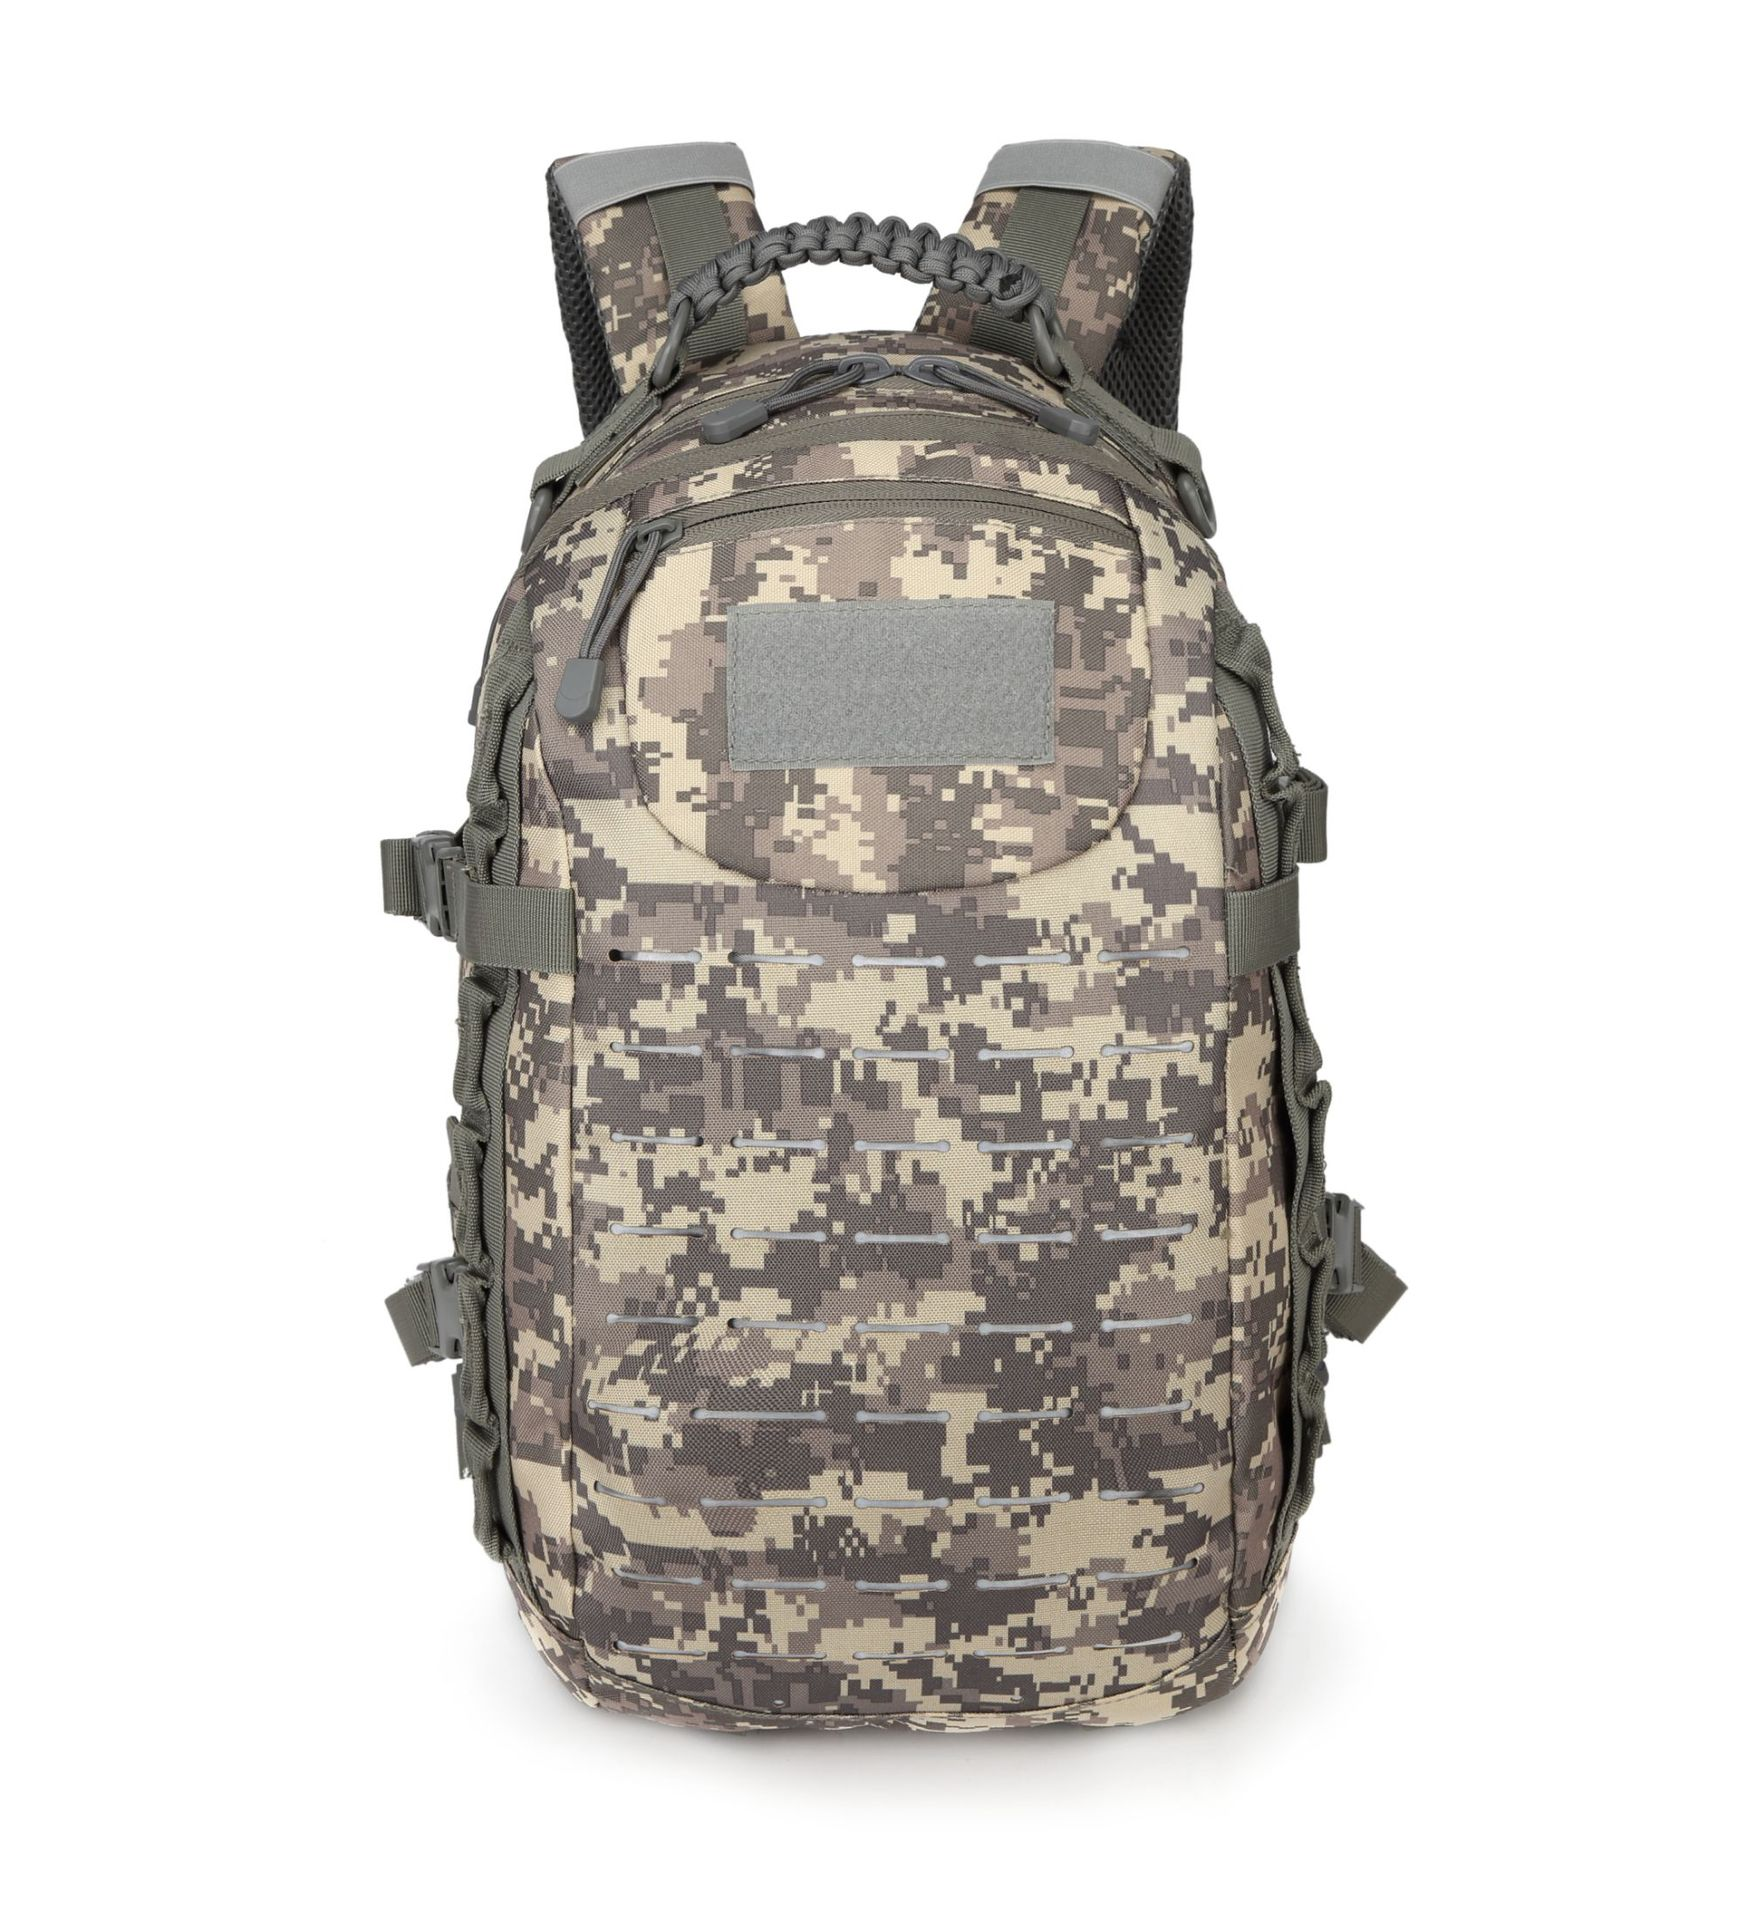 Outdoor Dragon Eggs Camouflage Multi-functional Tactical Backpack Army Fans Backpack Assault The Waterproof Wearable Commuting L